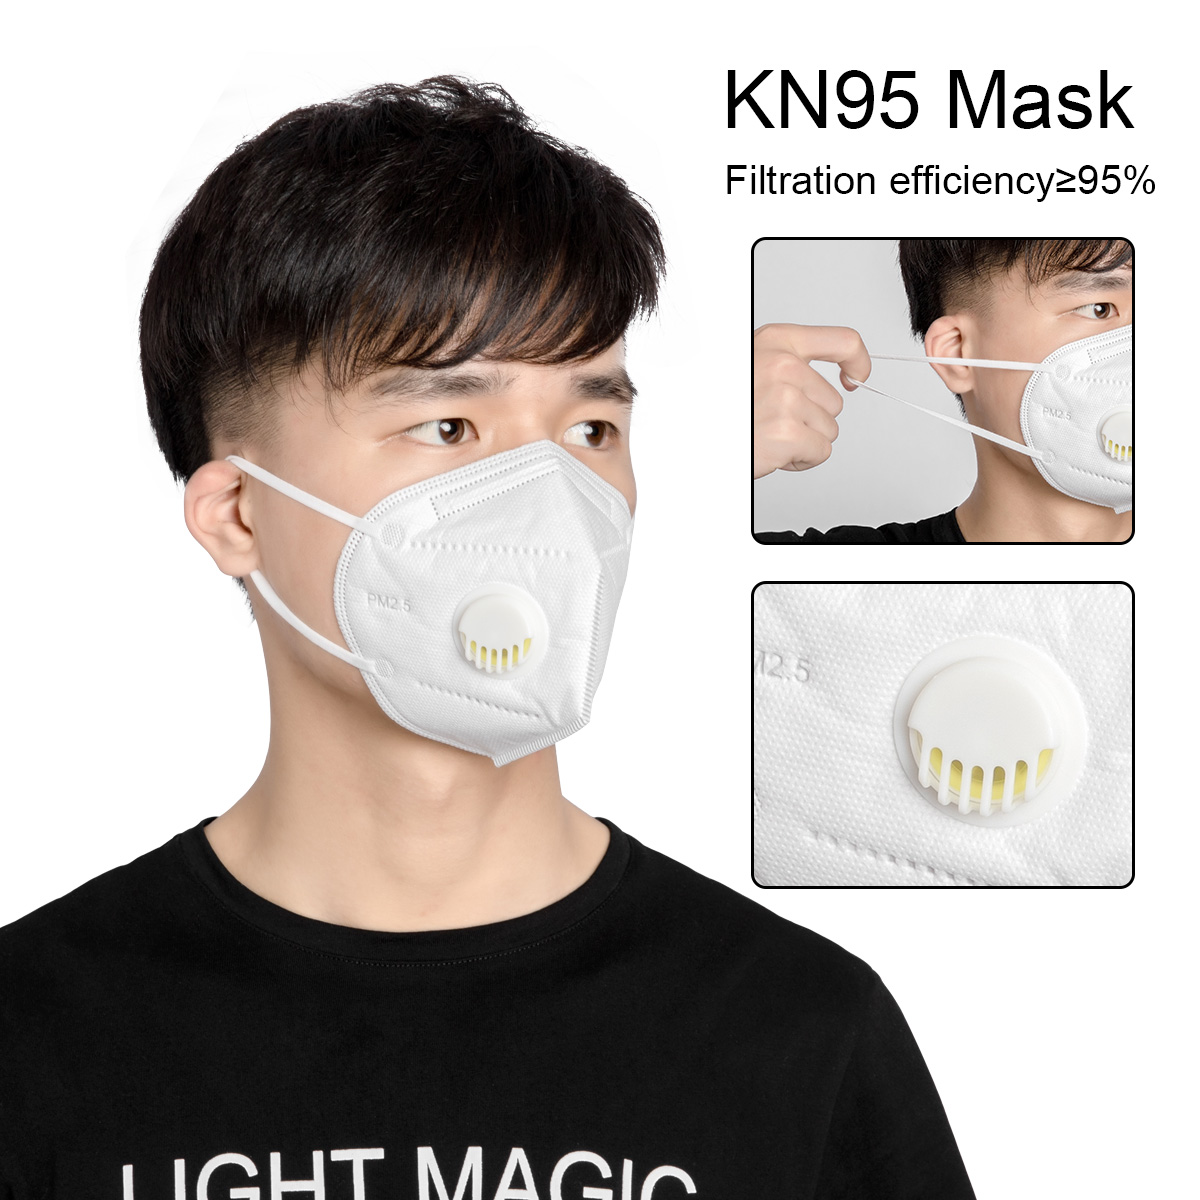 100pcs Mask KN95 PM2.5 Anti Virus Formaldehyde Bad Smell Bacteria Respirator Valve Dust-proof Mouth Masks Coronavirus Prevention